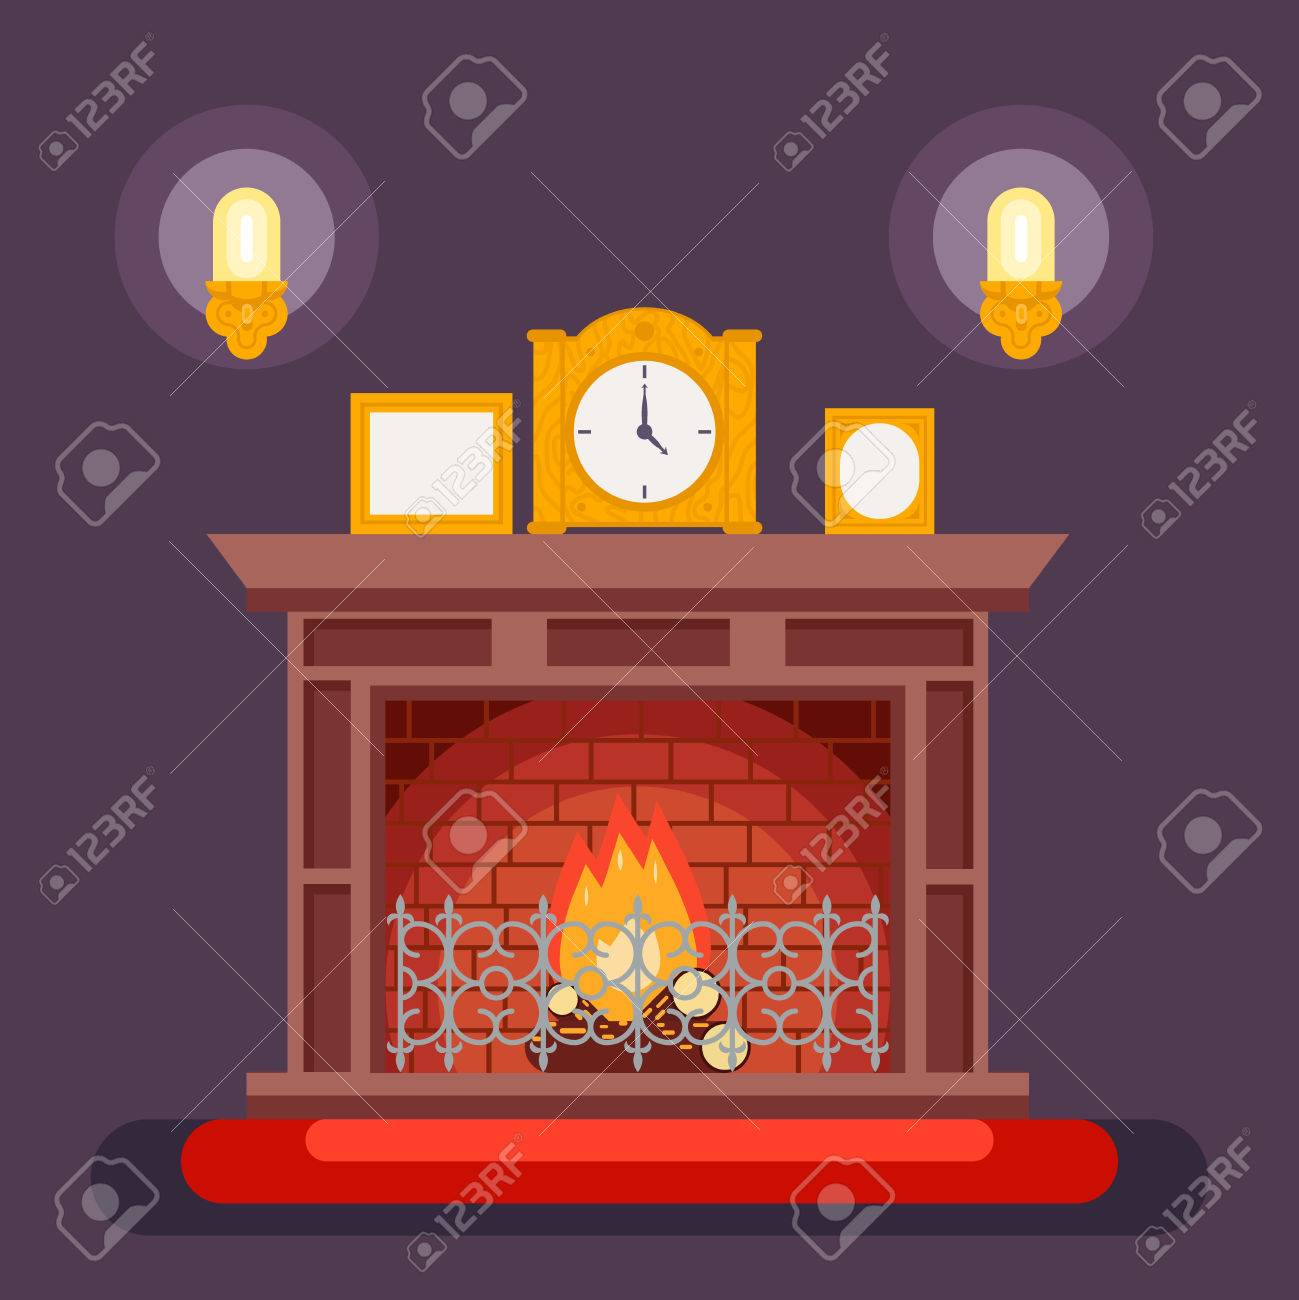 fireplace evening discussing concept icon background flat vector